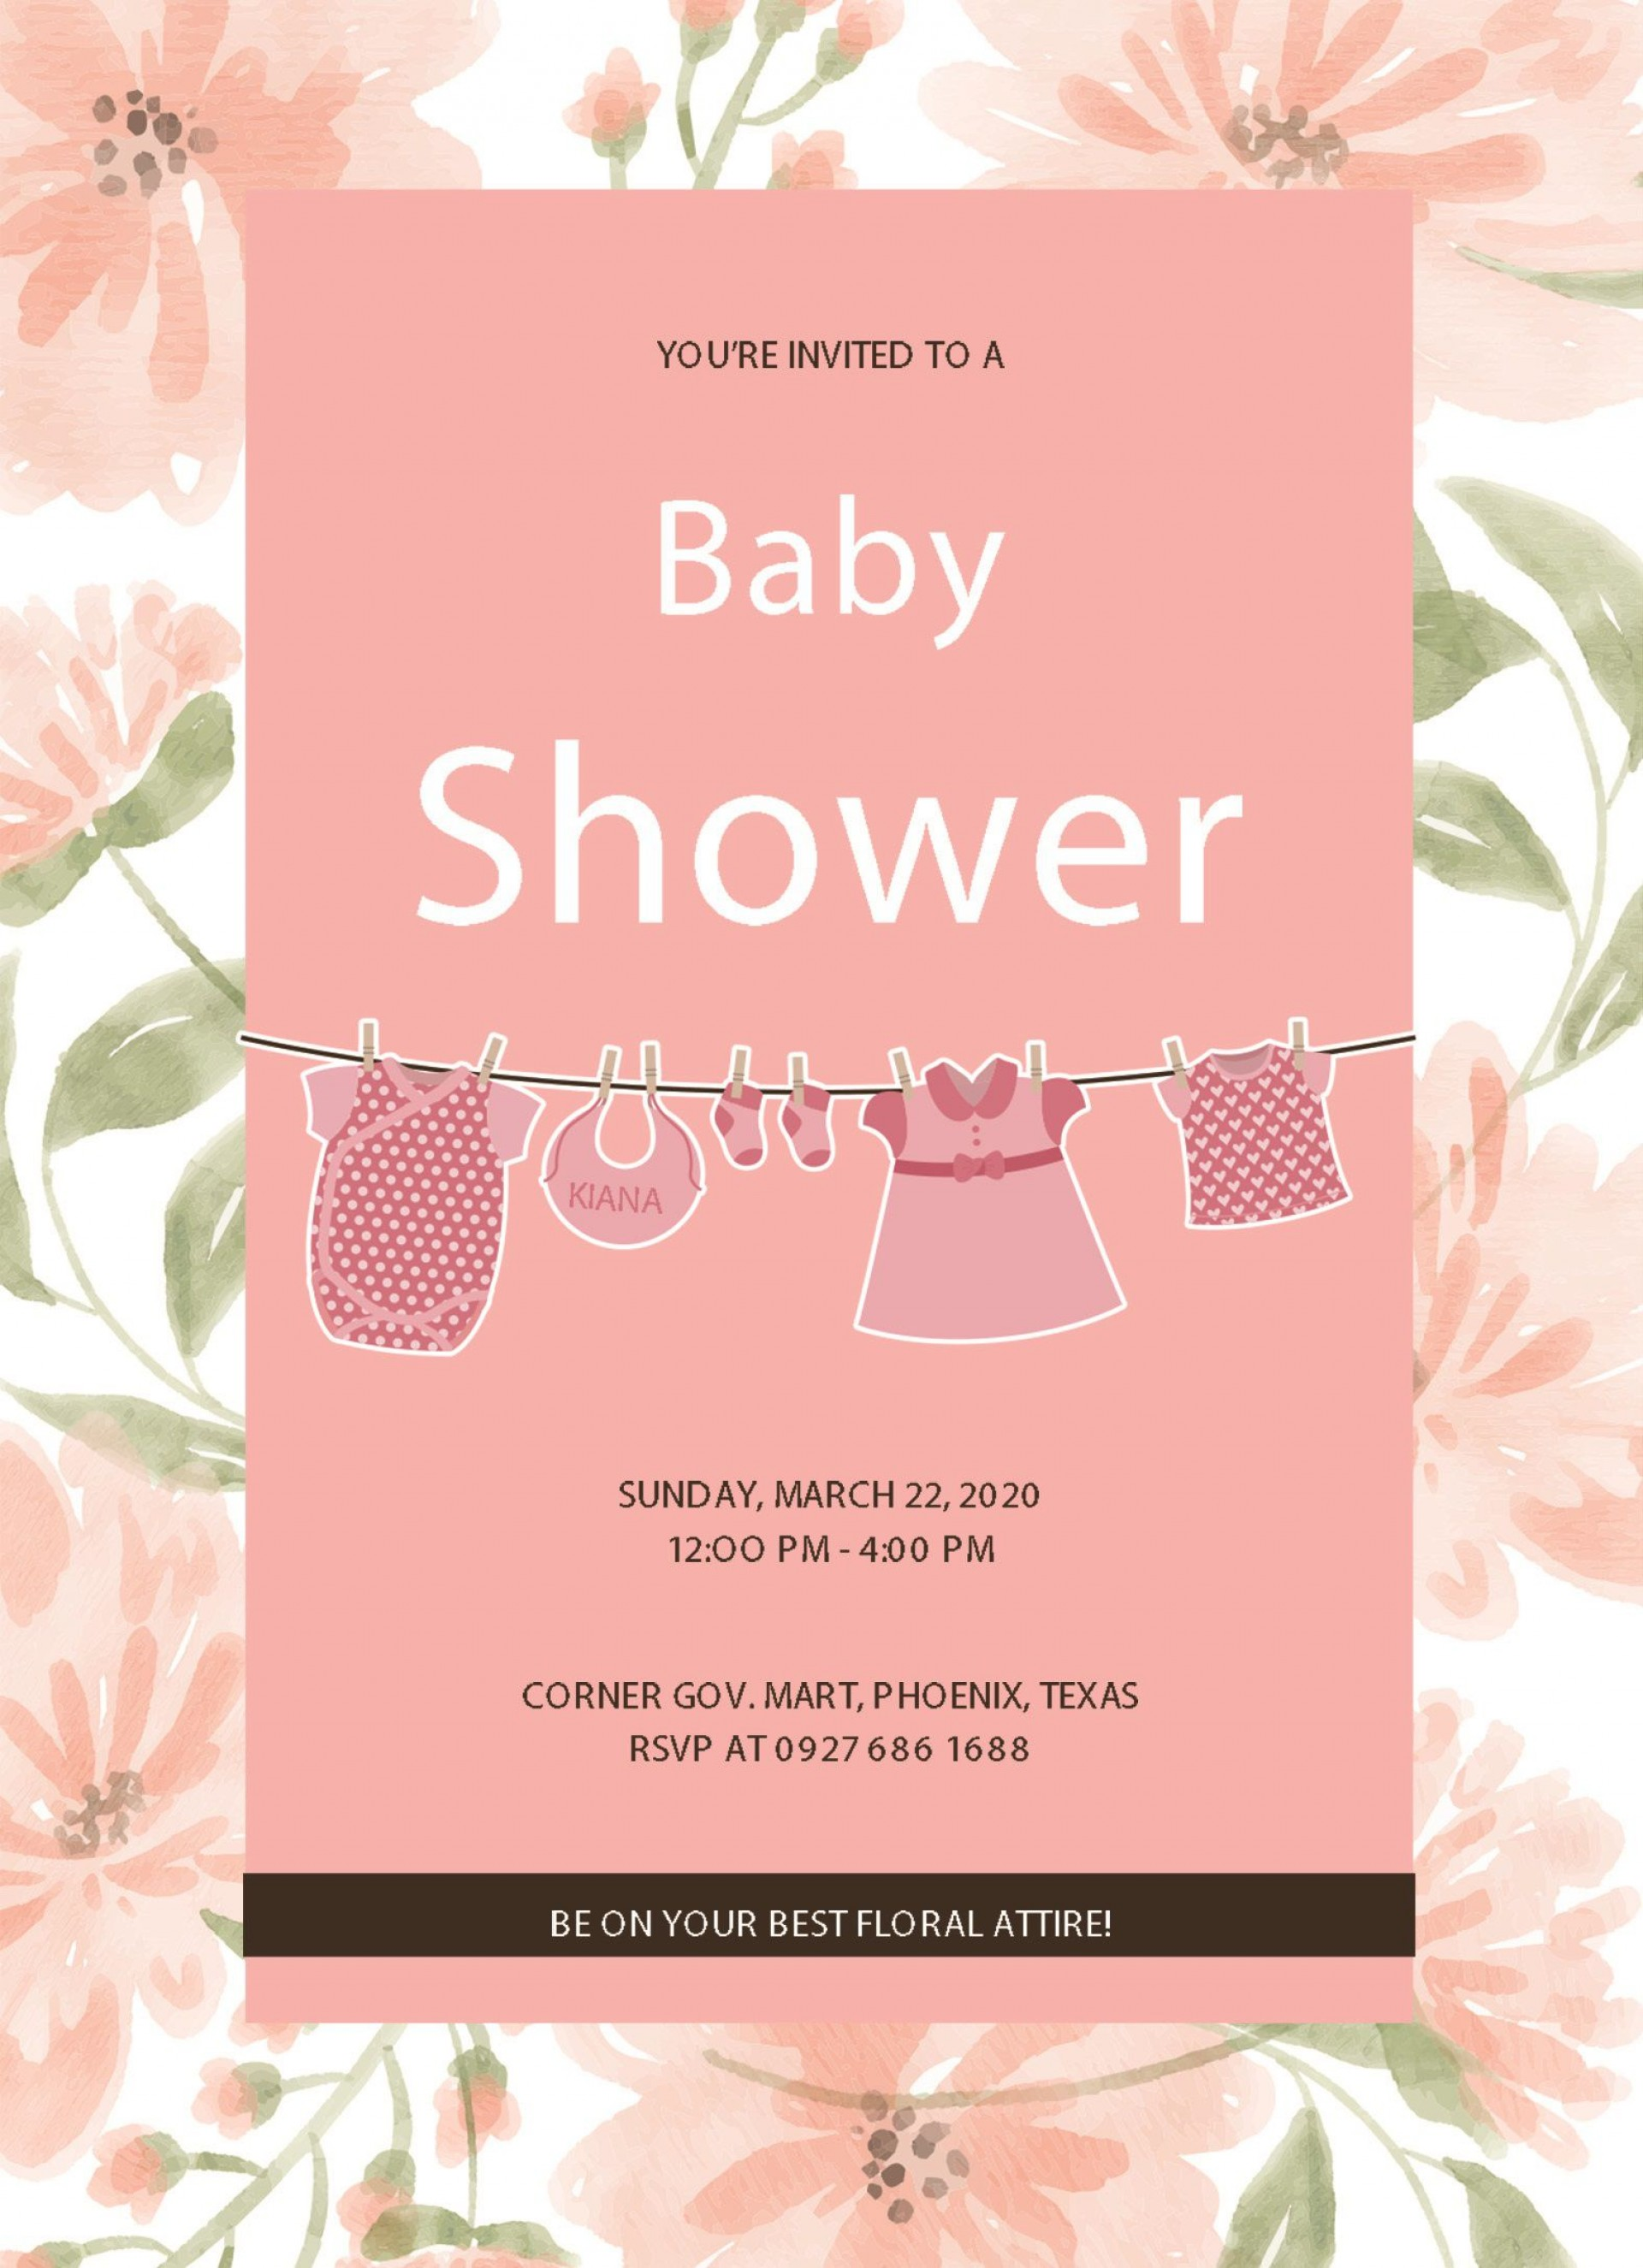 004 Breathtaking Baby Shower Card Template Free Download High Resolution  Indian Invitation1920